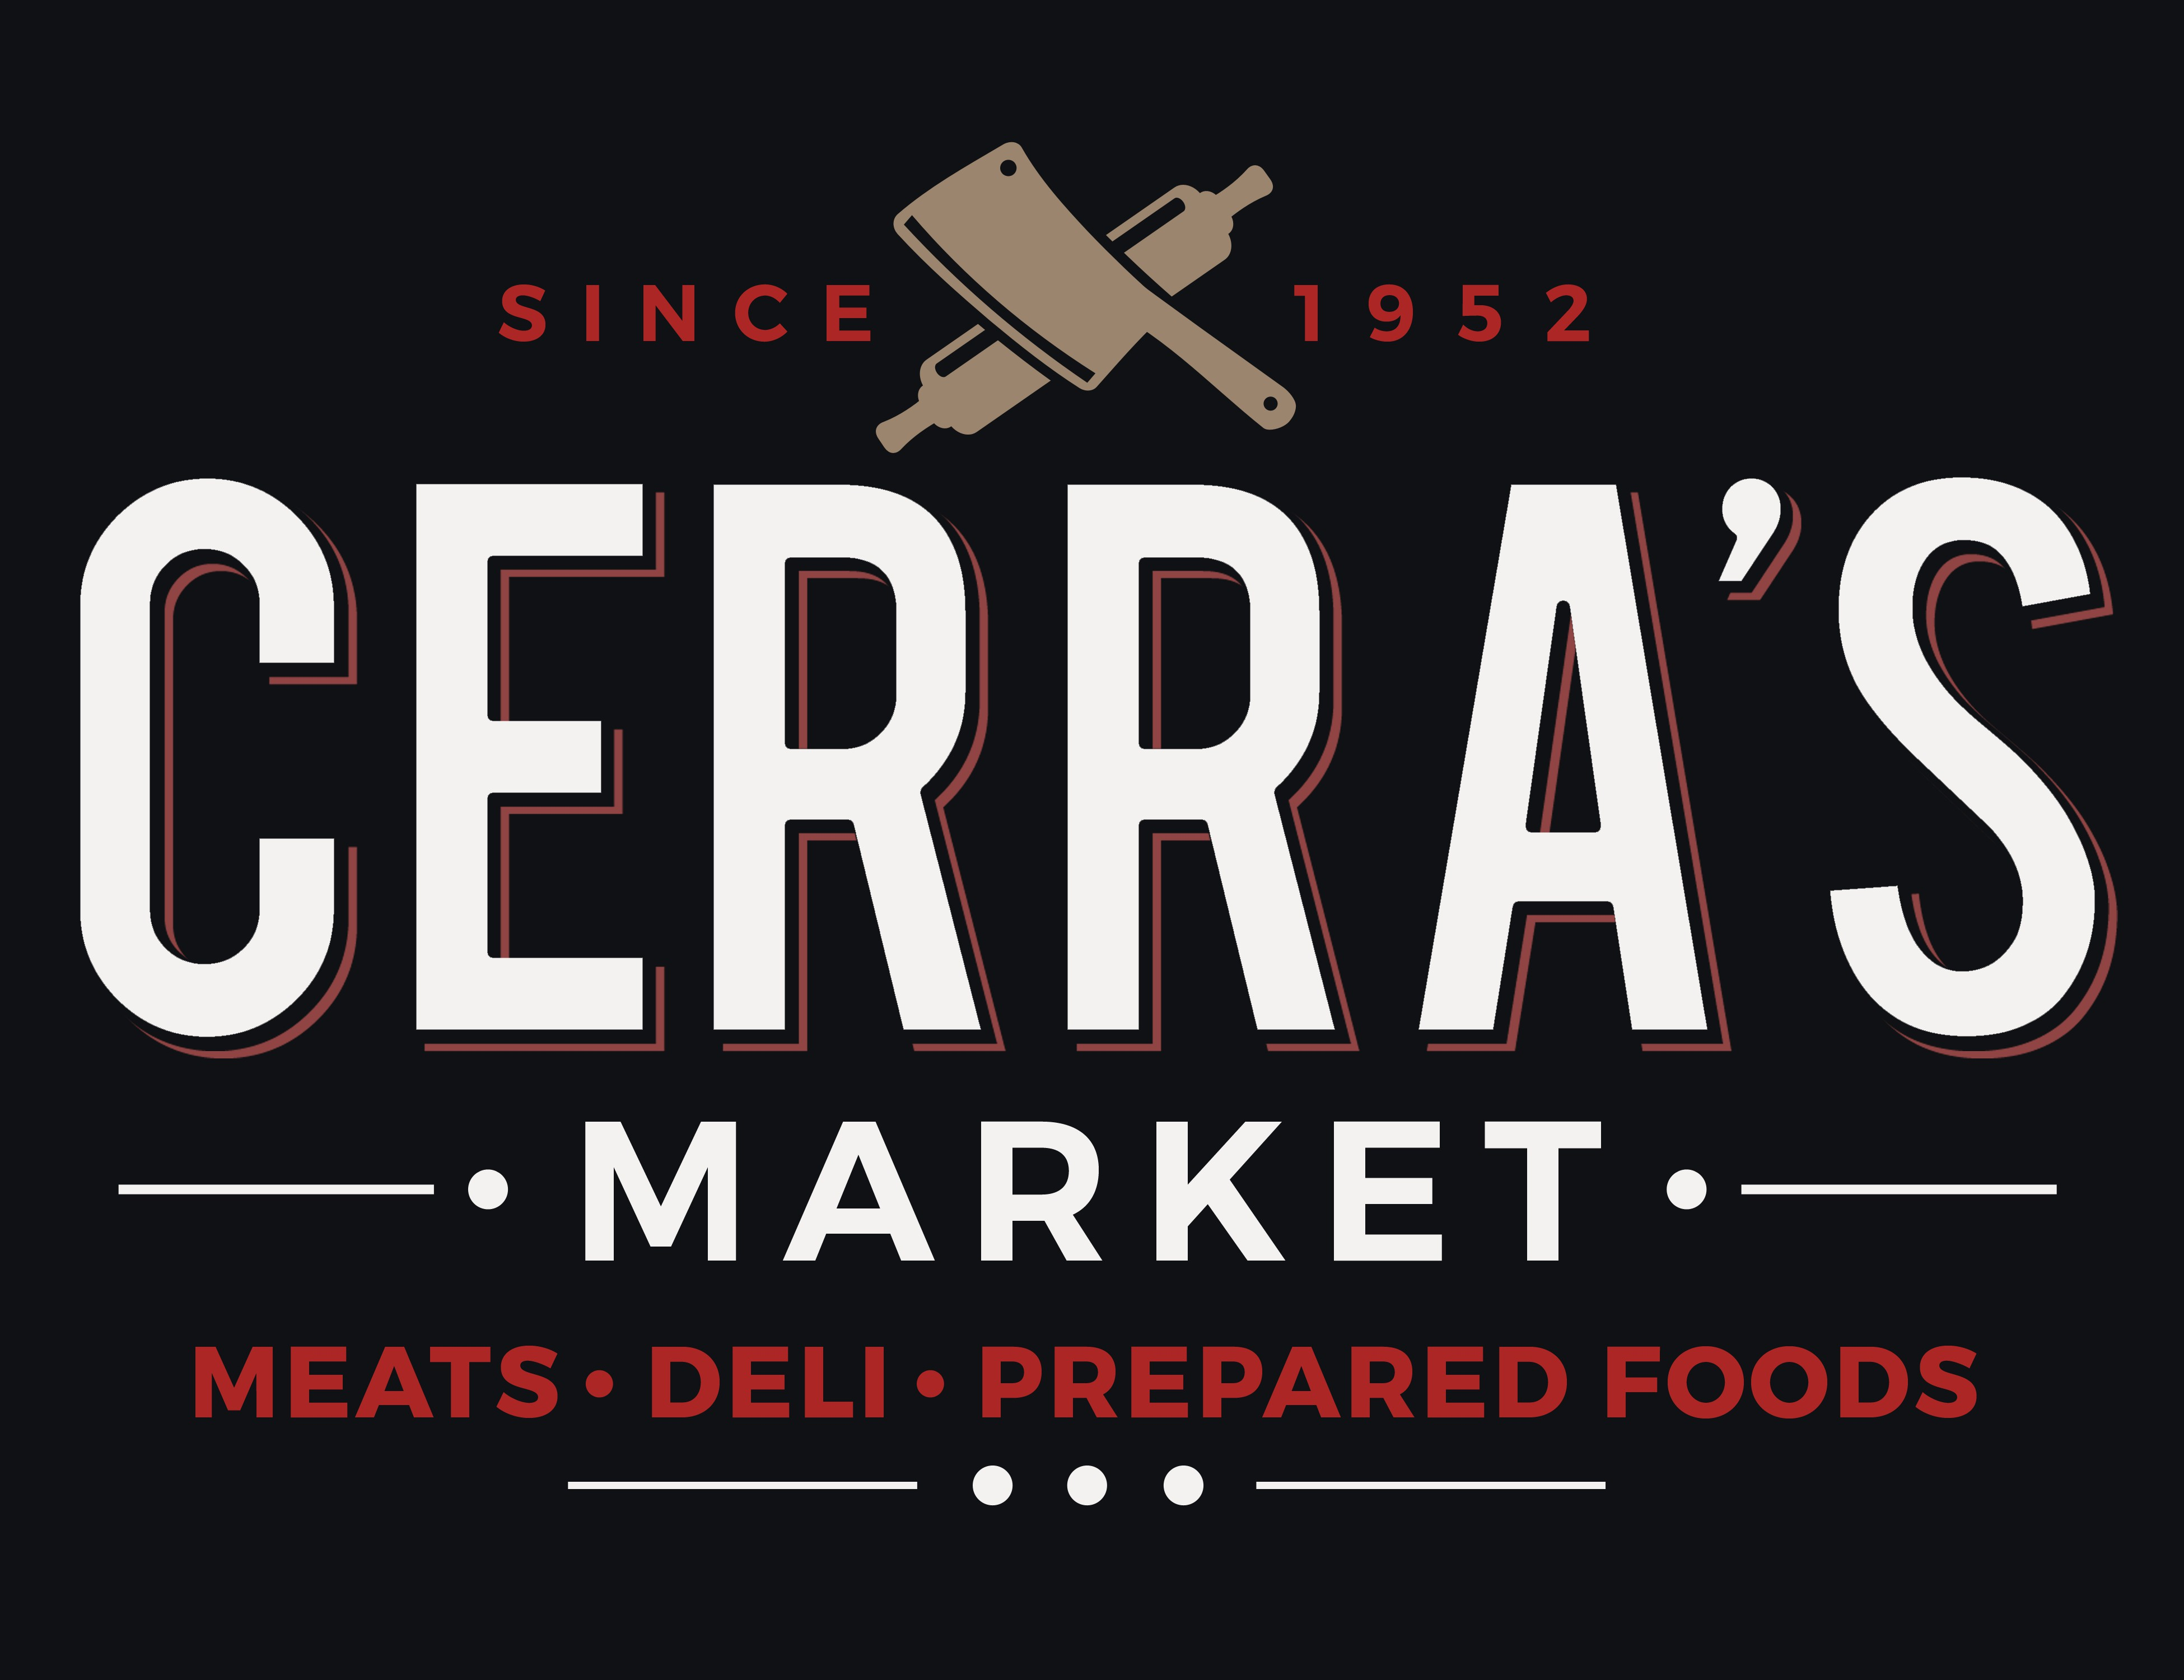 Create a catchy logo for Cerra's (meat, deli, & prepared foods)